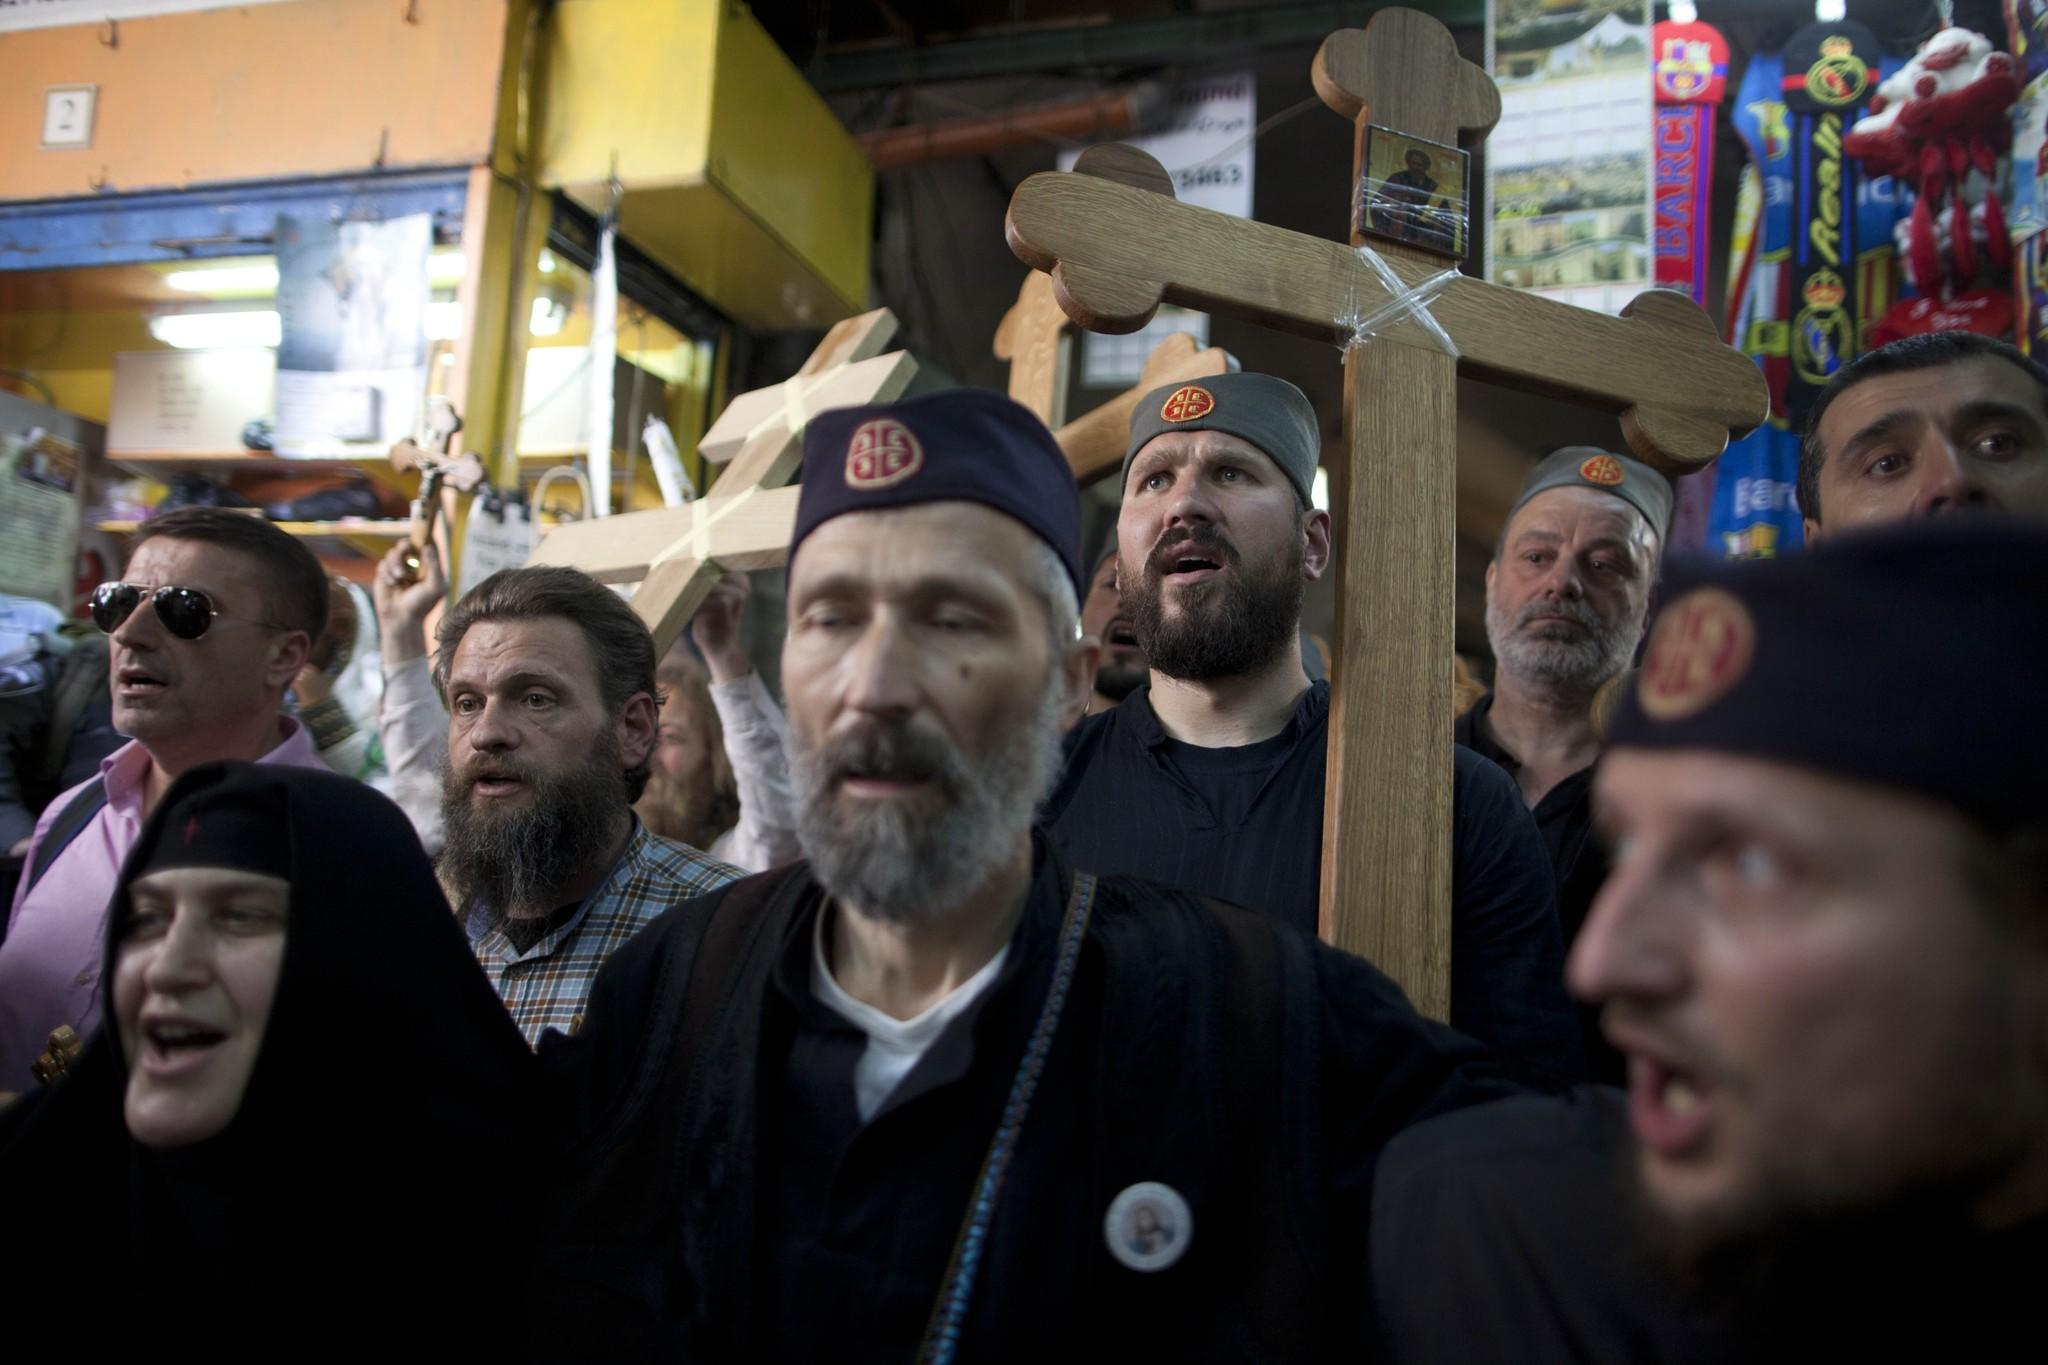 Orthodox Christian pilgrims hold wooden crosses as they take part in the Good Friday procession along the Via Dolorosa in Jerusalem's Old City on Friday.